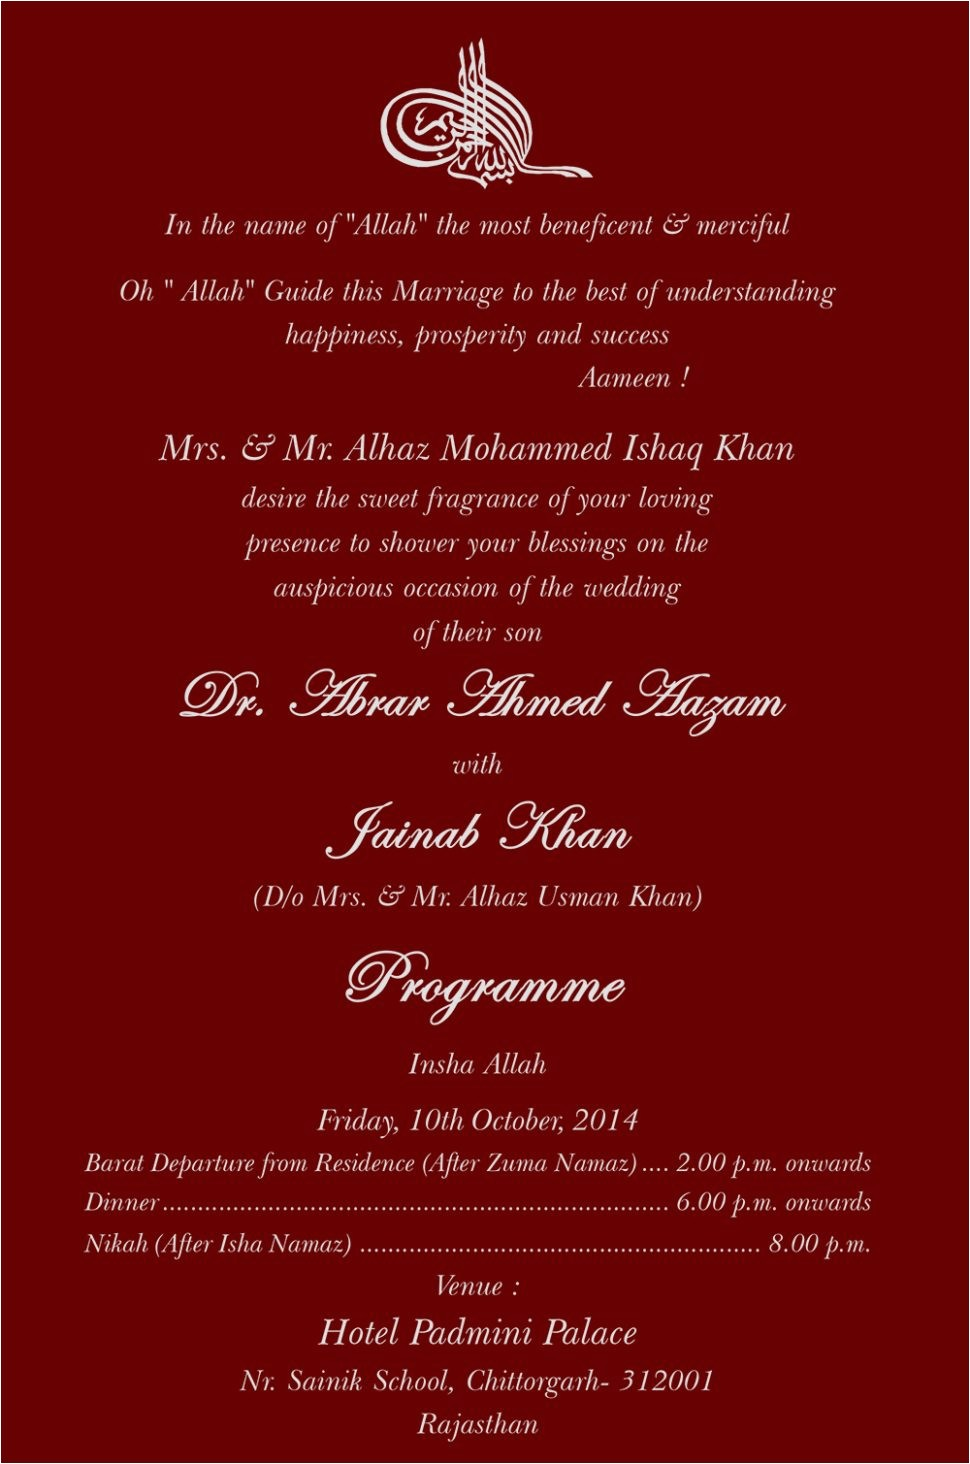 wedding ceremony invitation wording samples